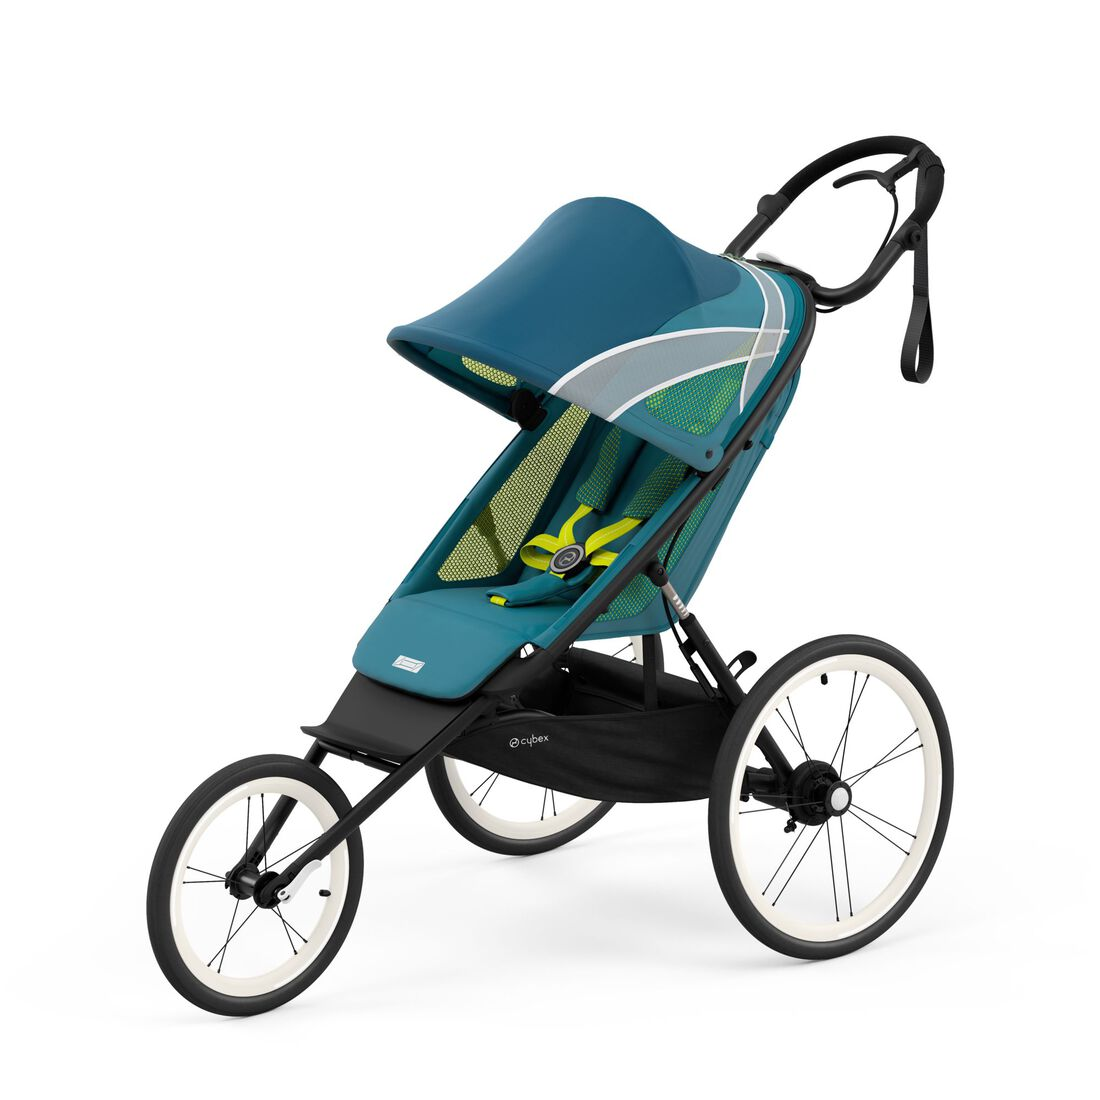 CYBEX Avi Seat Pack - Maliblue in Maliblue large image number 2